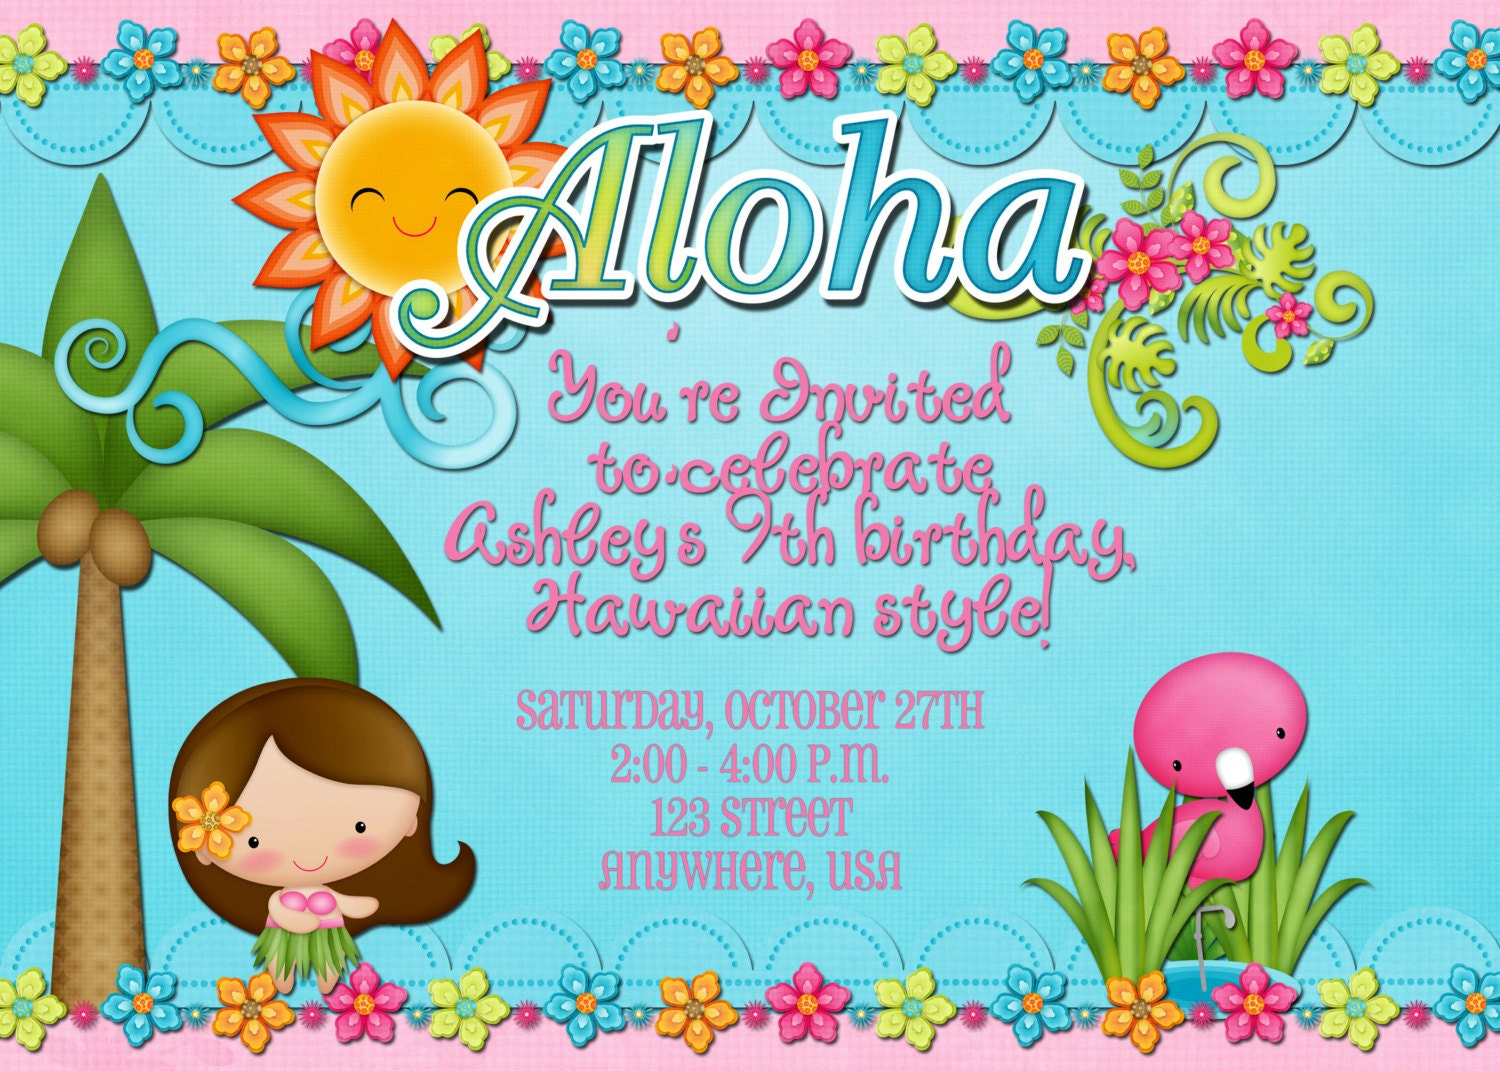 Luau Birthday Party Invitations for your inspiration to make invitation template look beautiful